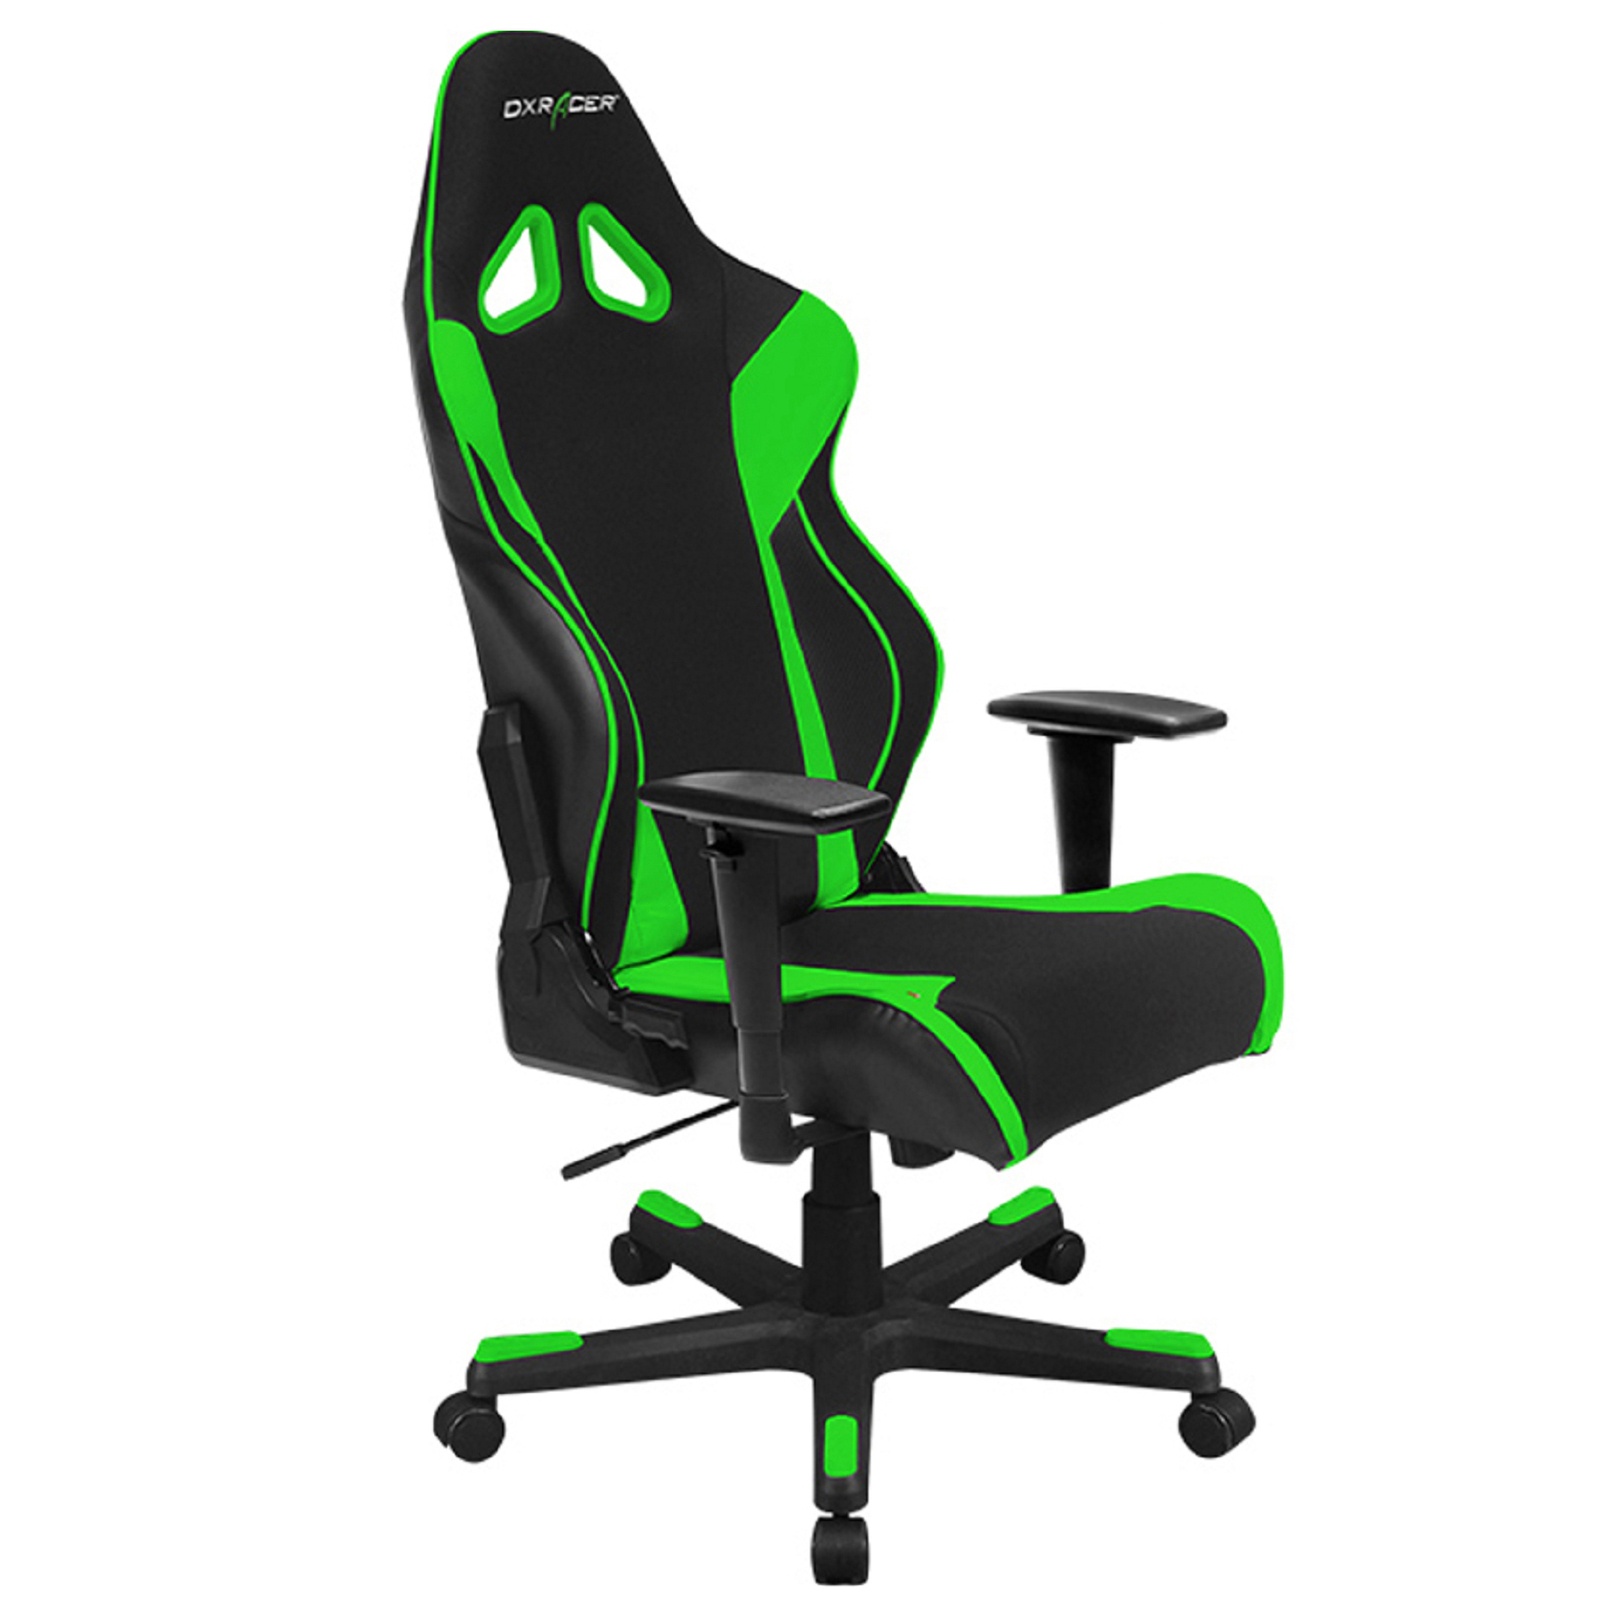 dxracer gaming chairs swing chair for newborn rw106ne game computer office